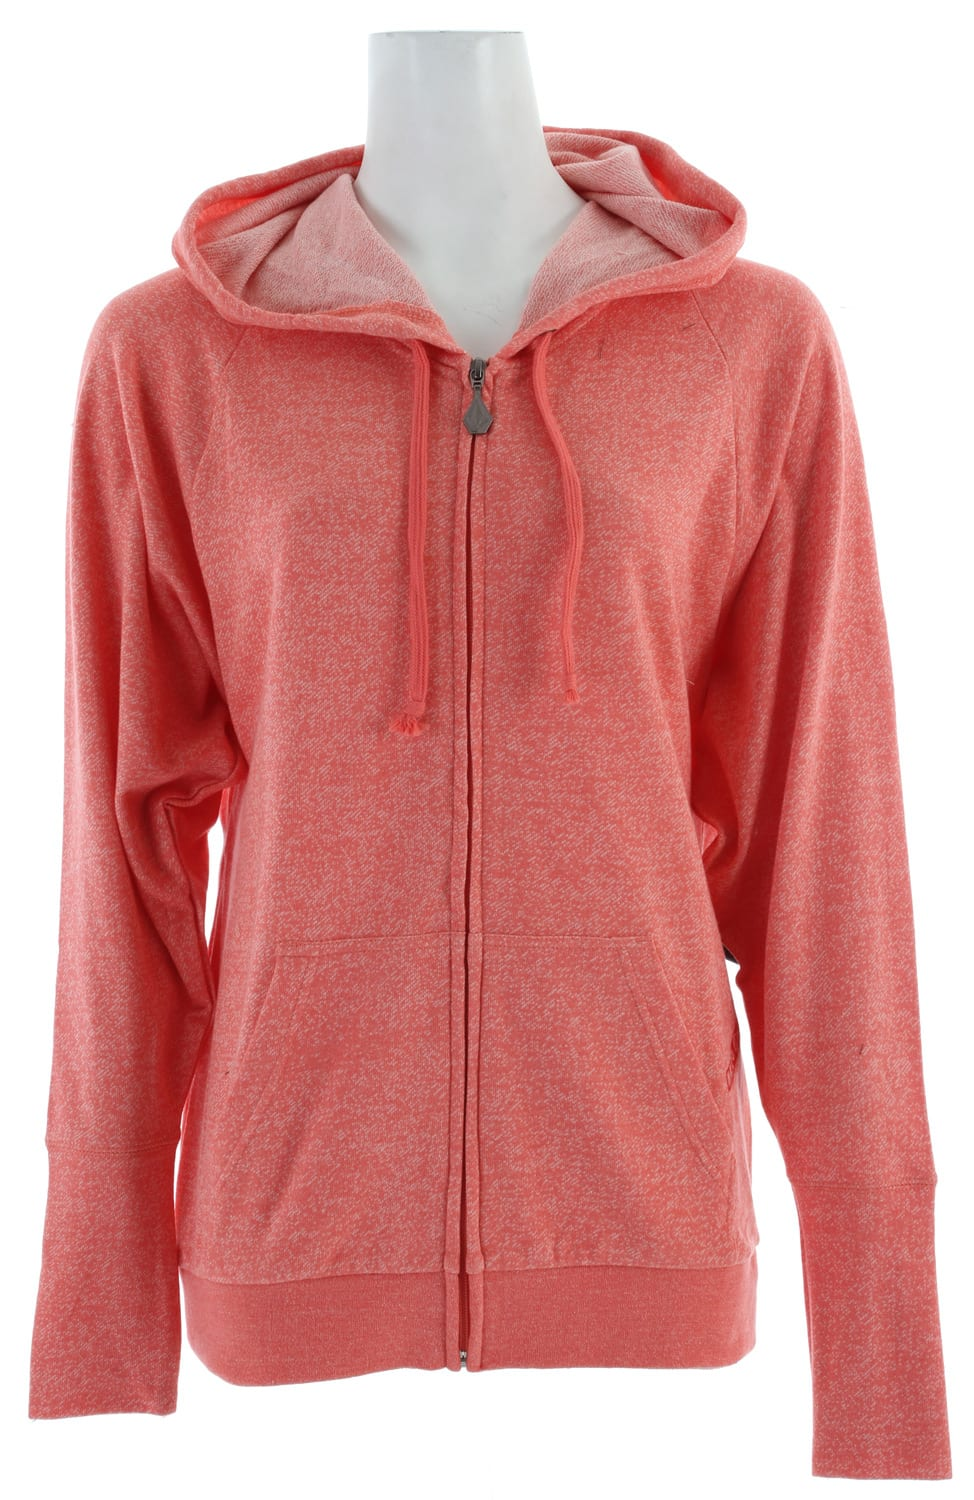 Shop for Volcom Moclov Stoner Zip Hoodie Coral Sorbet - Women's